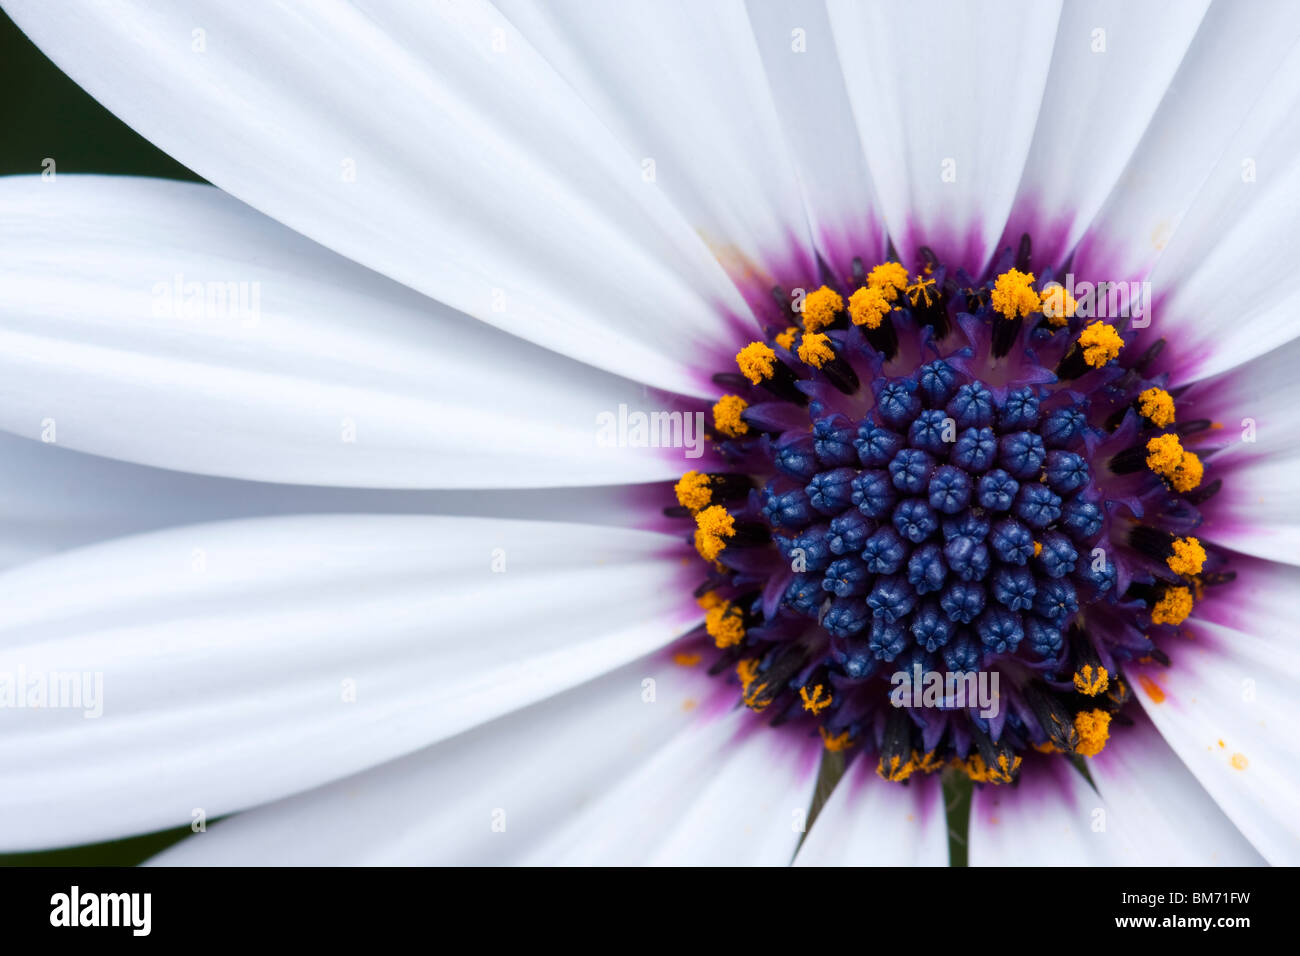 White flower with purple center stock photos white flower with a close up shot of beautiful white flower with purple center stock image mightylinksfo